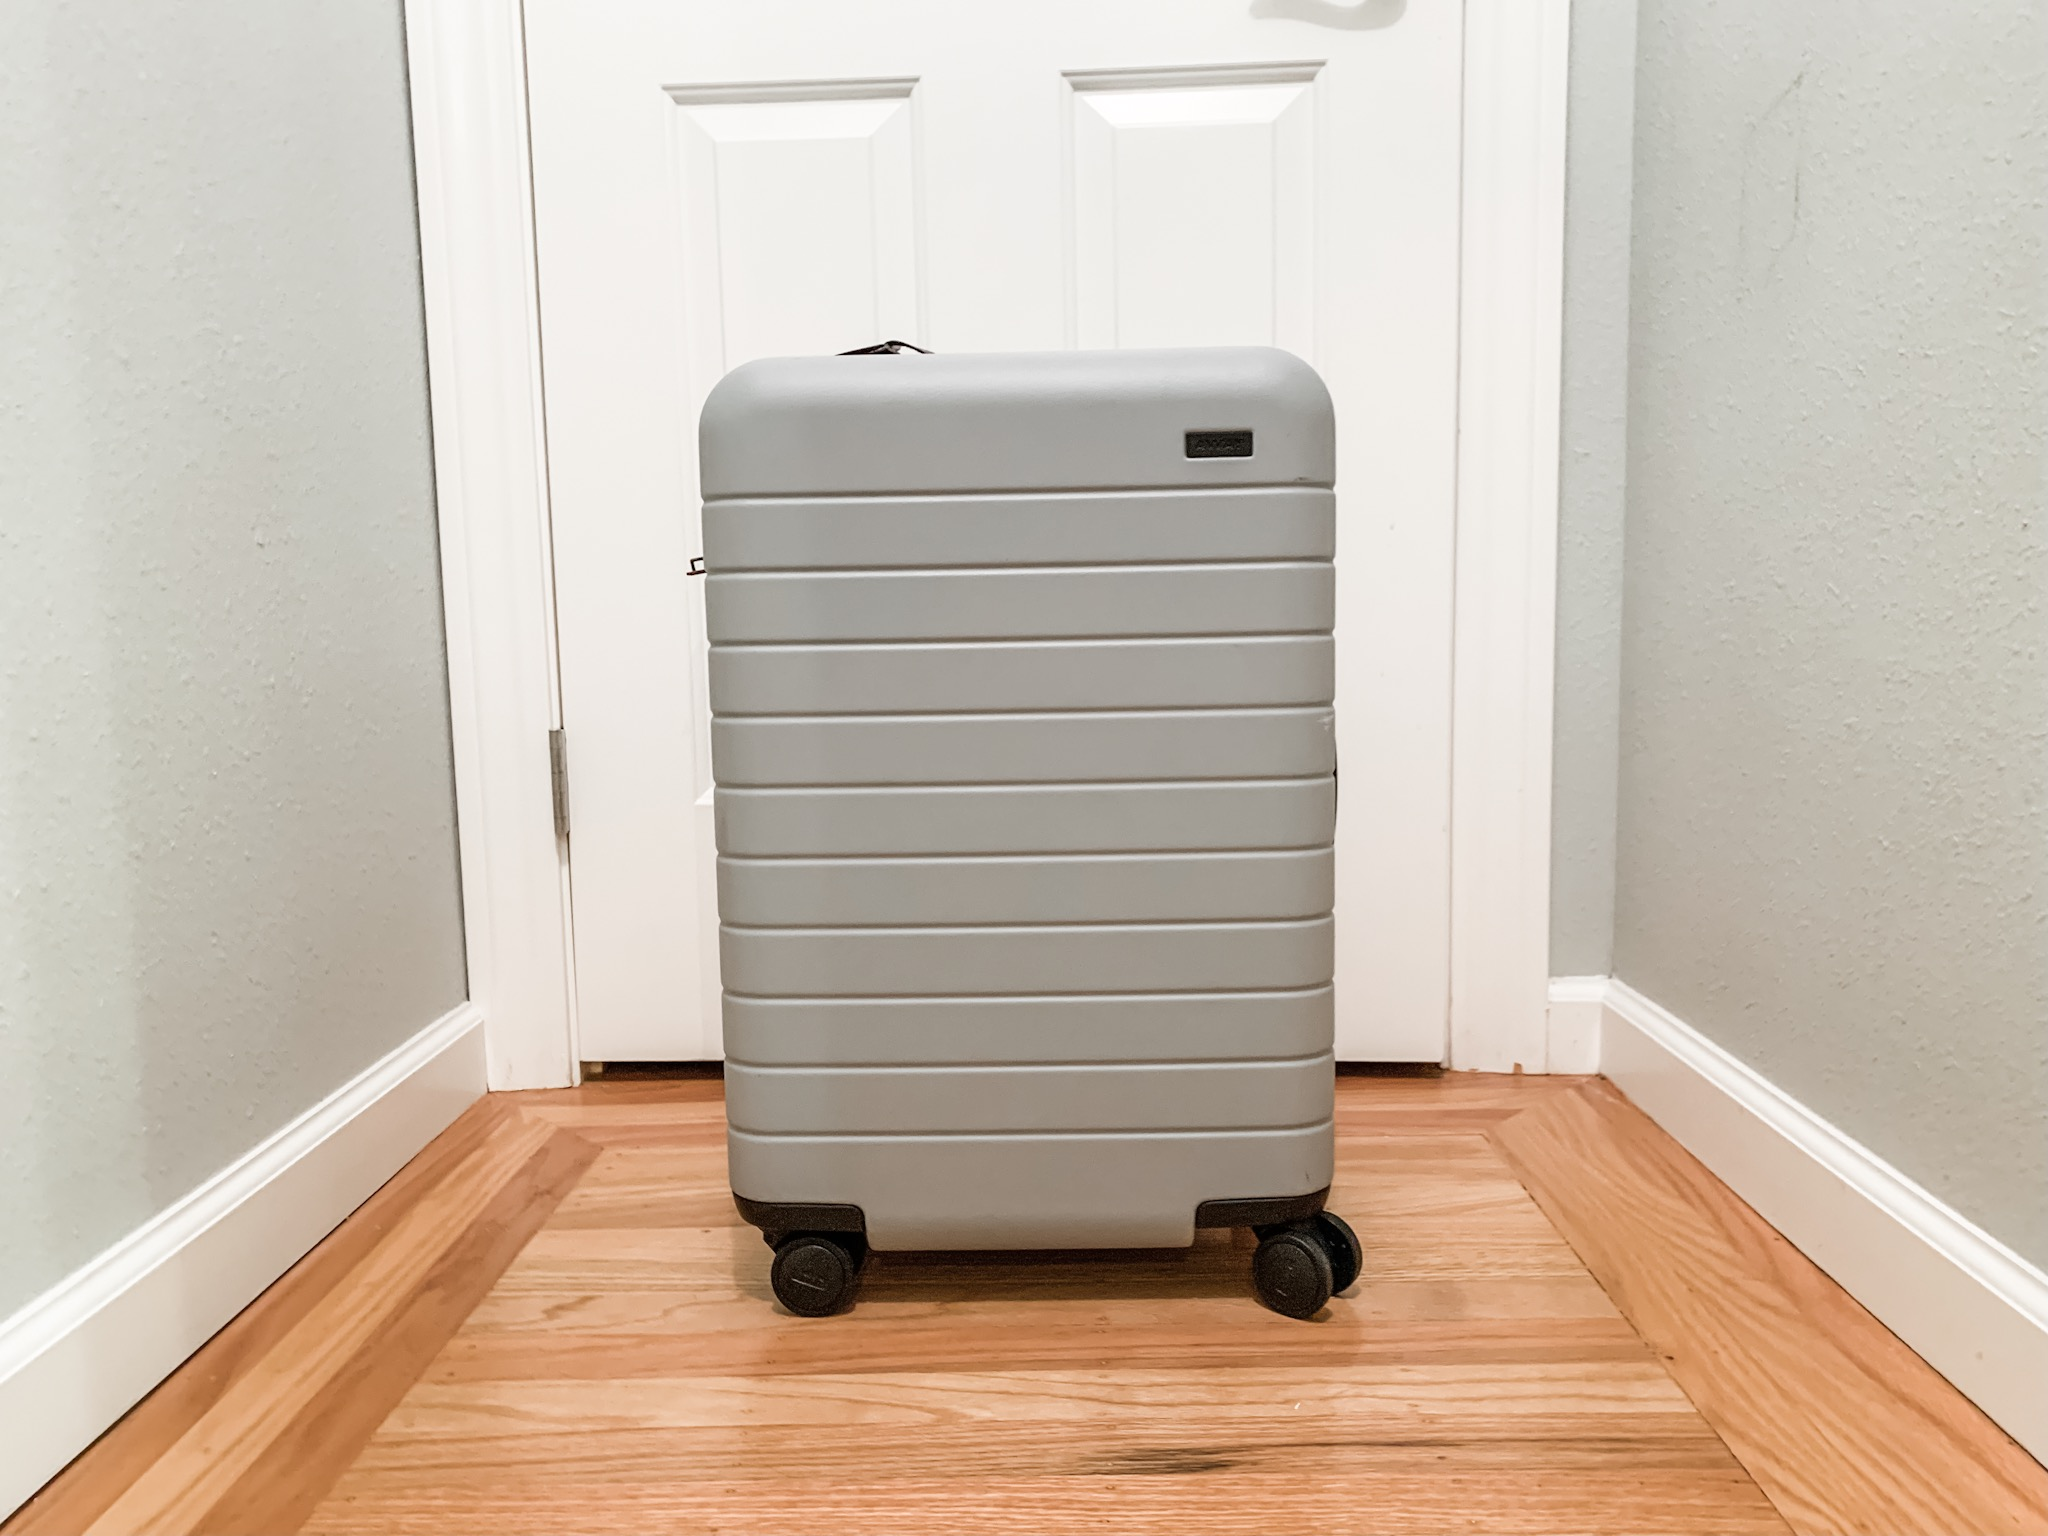 The large carry on